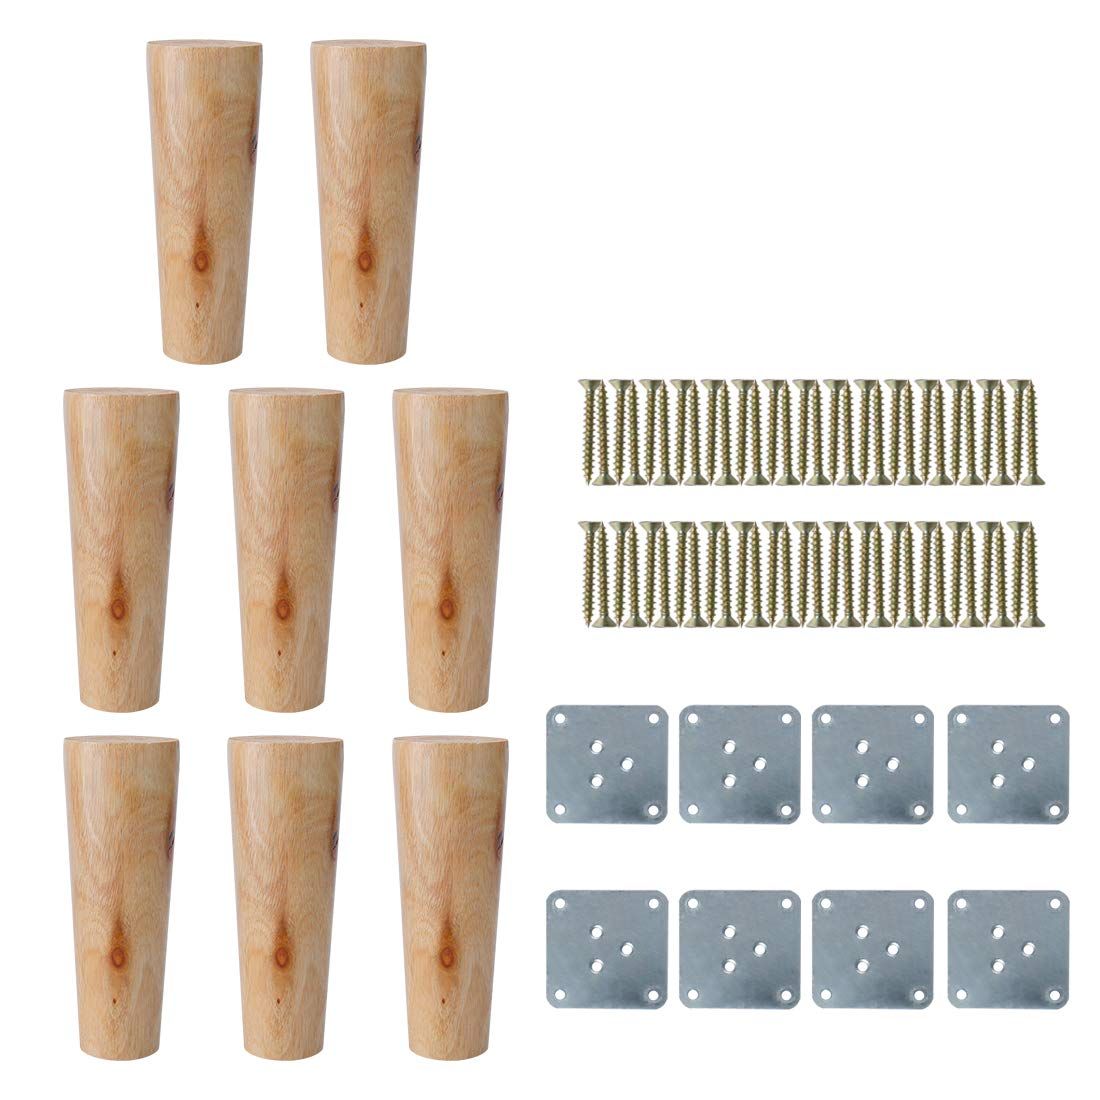 uxcell 6 inches Round Solid Wood Furniture Legs Sofa Chair Bed Desk Closet Cabinet Feet Replacement Set of 8